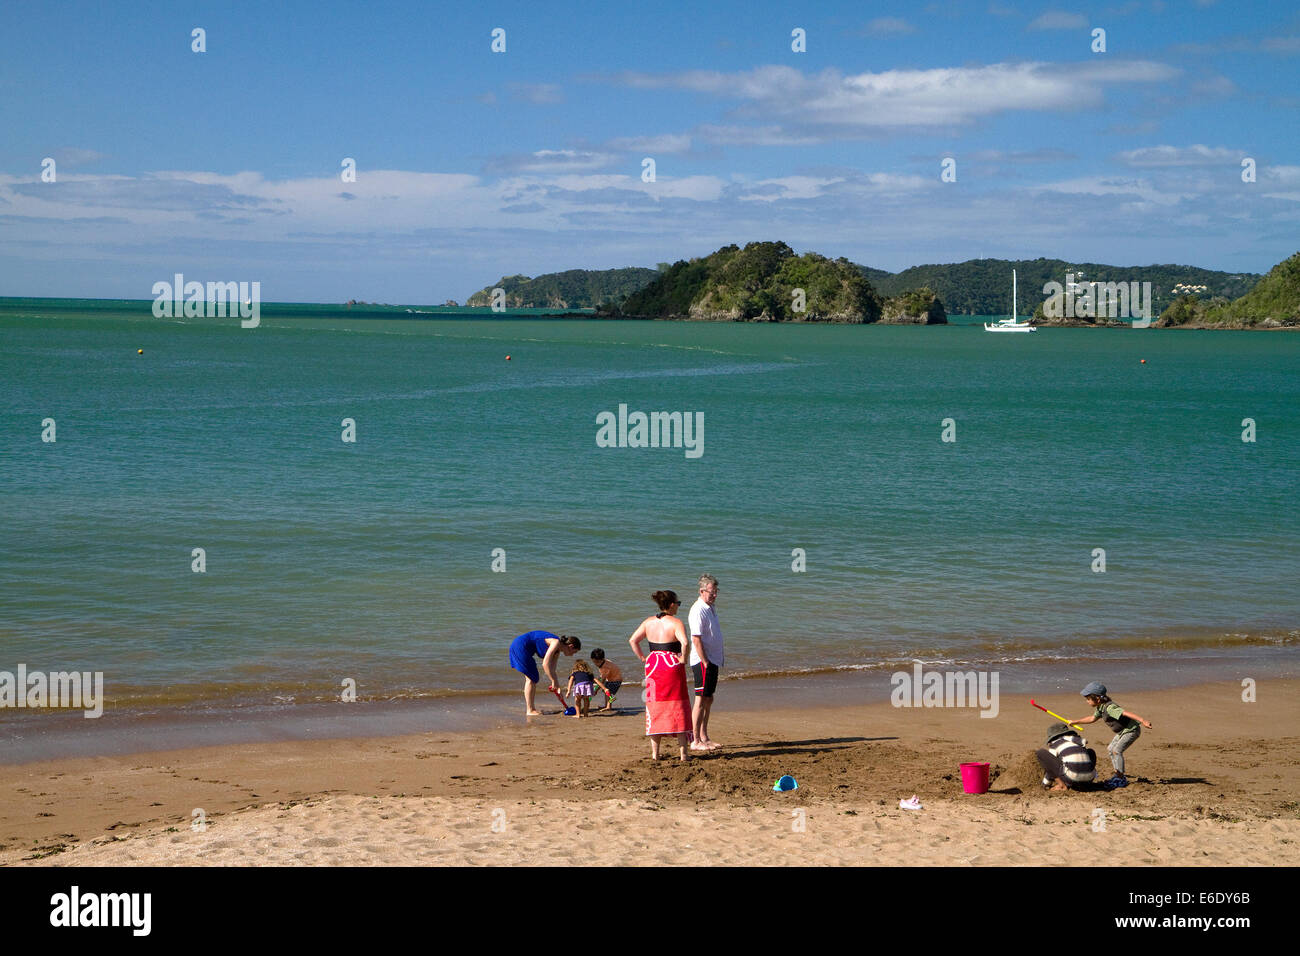 People on the beach at Bay of Islands at the town of Paihia, North Island, New Zealand. - Stock Image